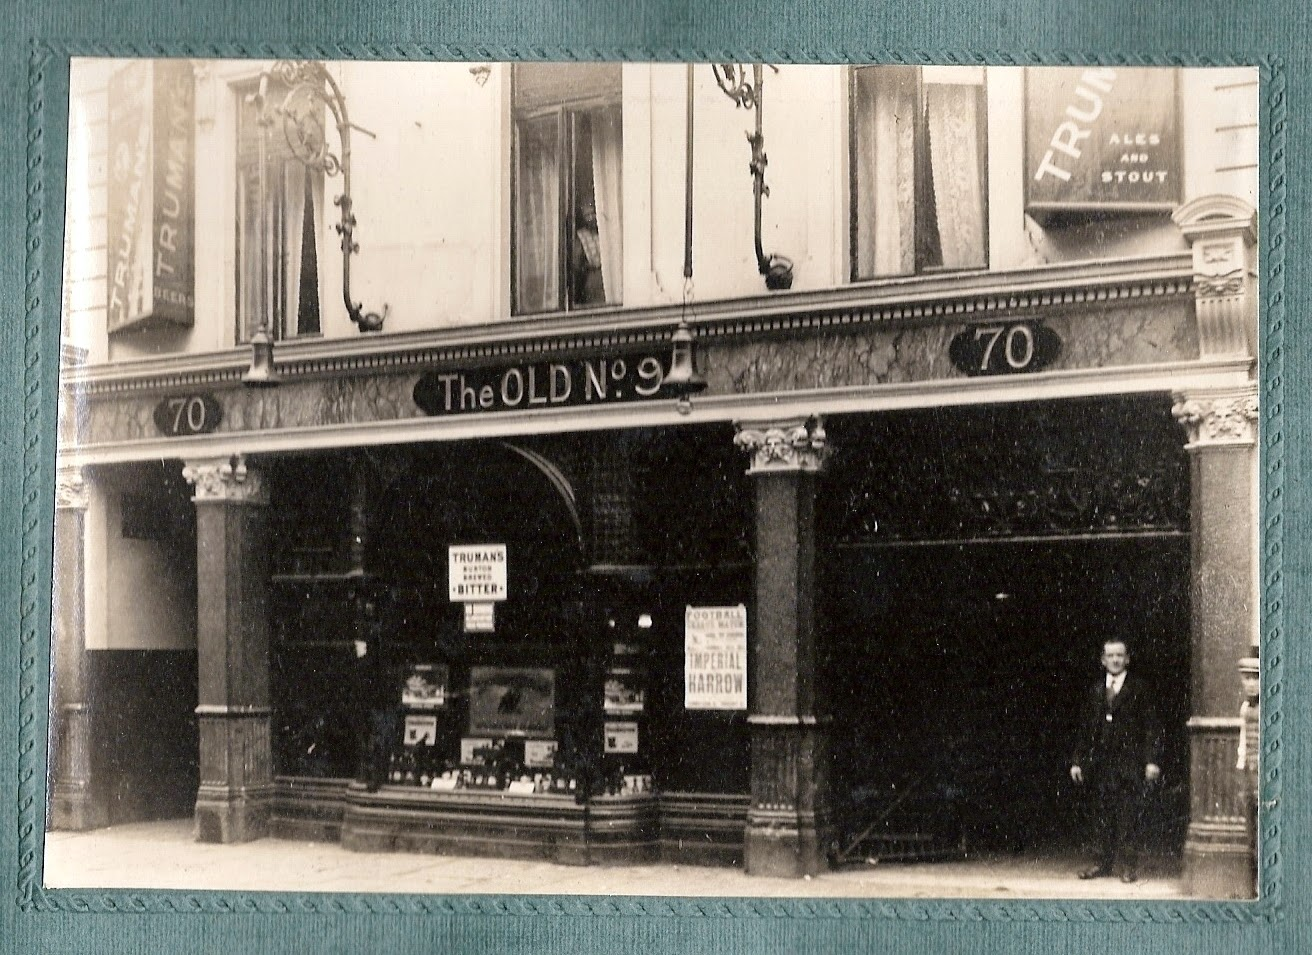 Photo outside of the Old No.9 pub